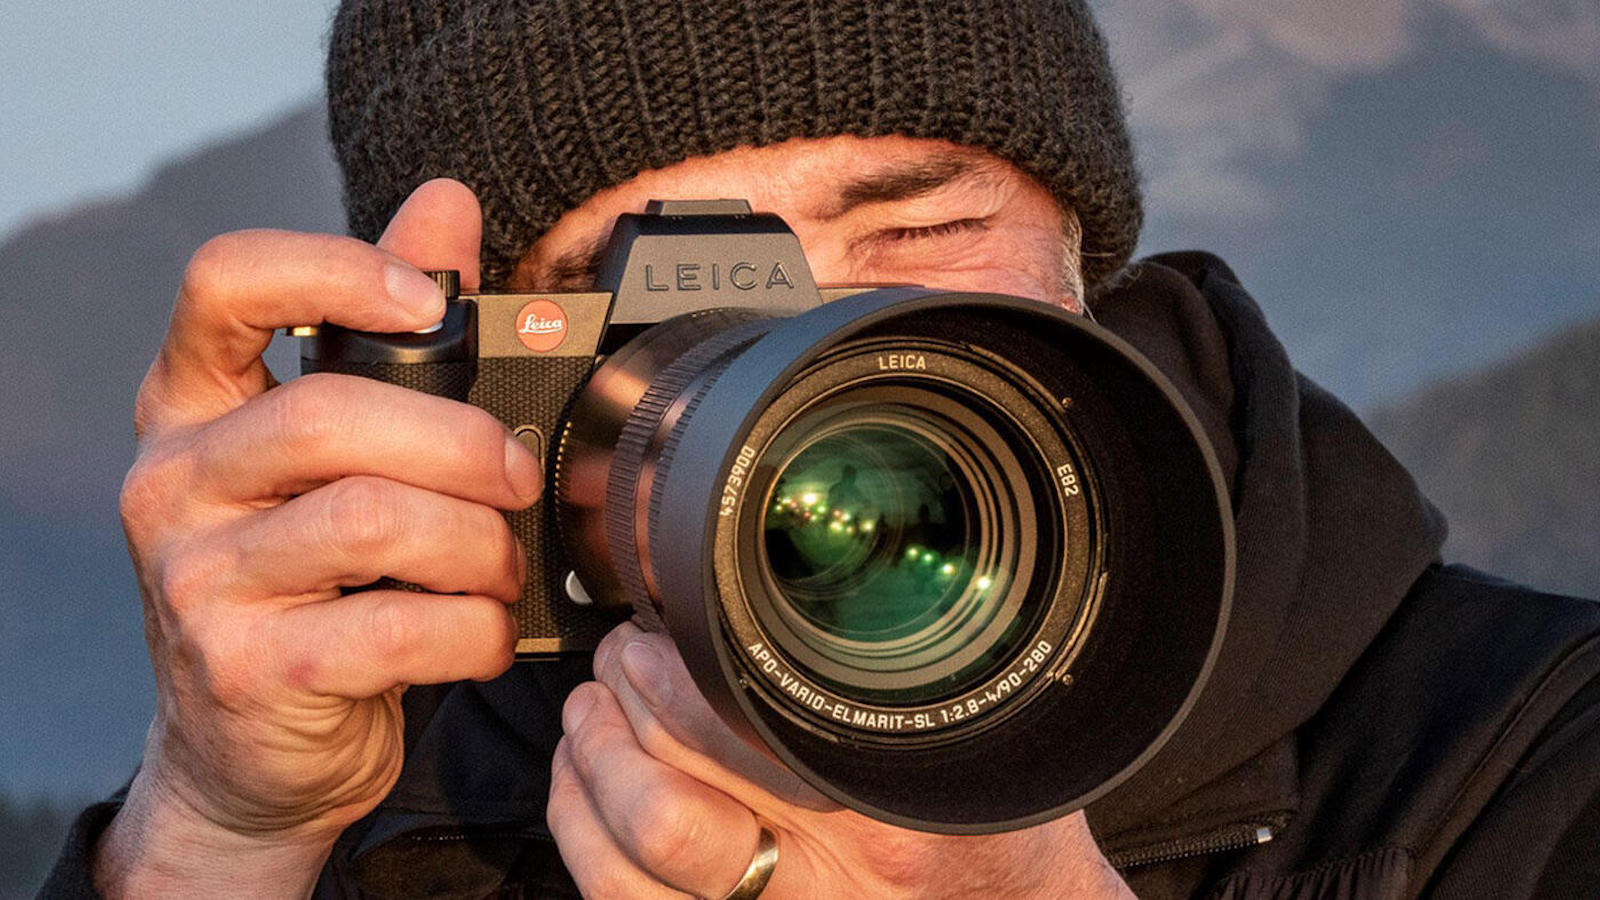 Leica SL2-S photo and video camera